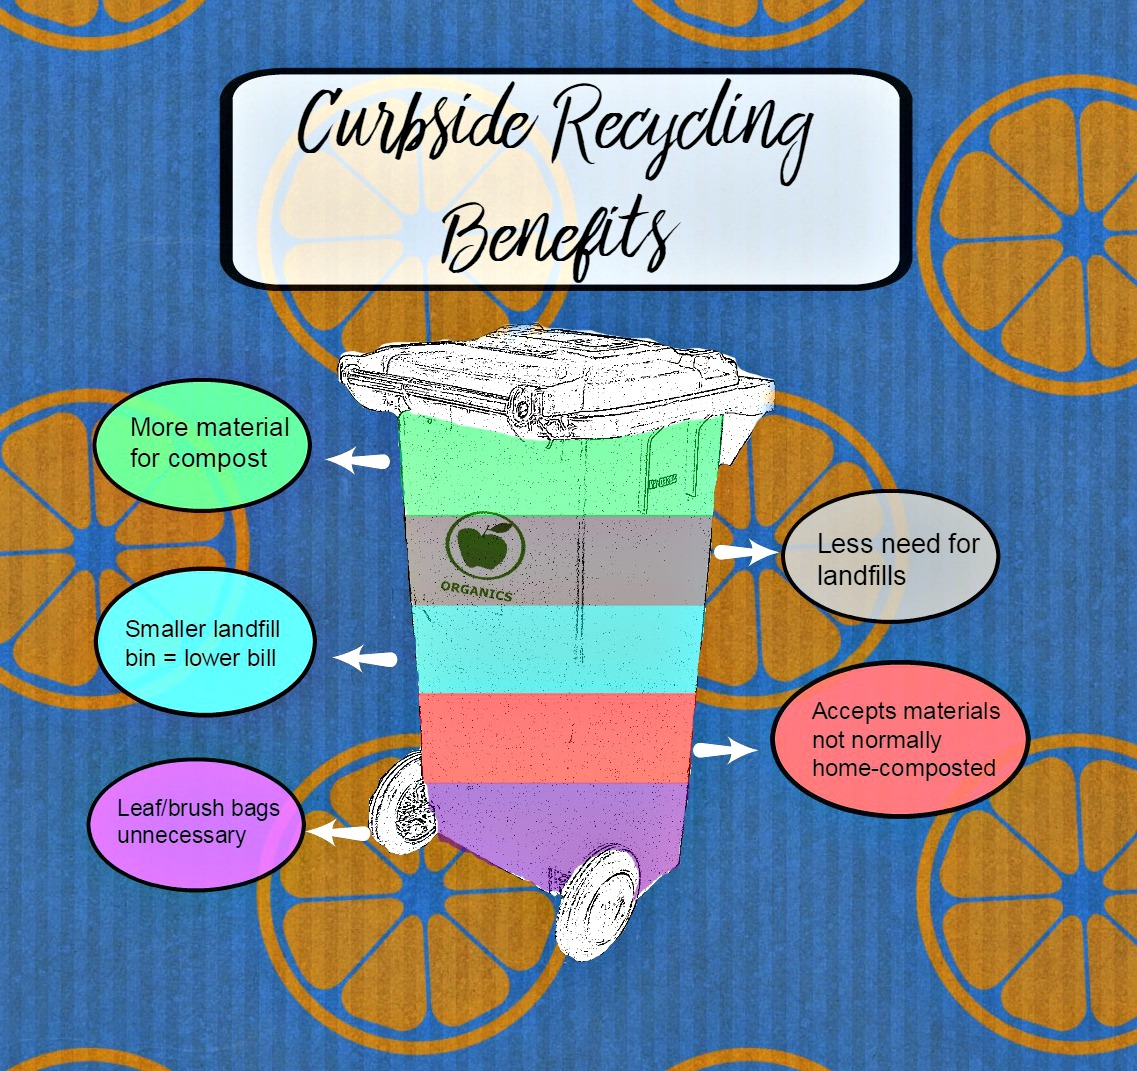 Benefits of curbside organics recycling